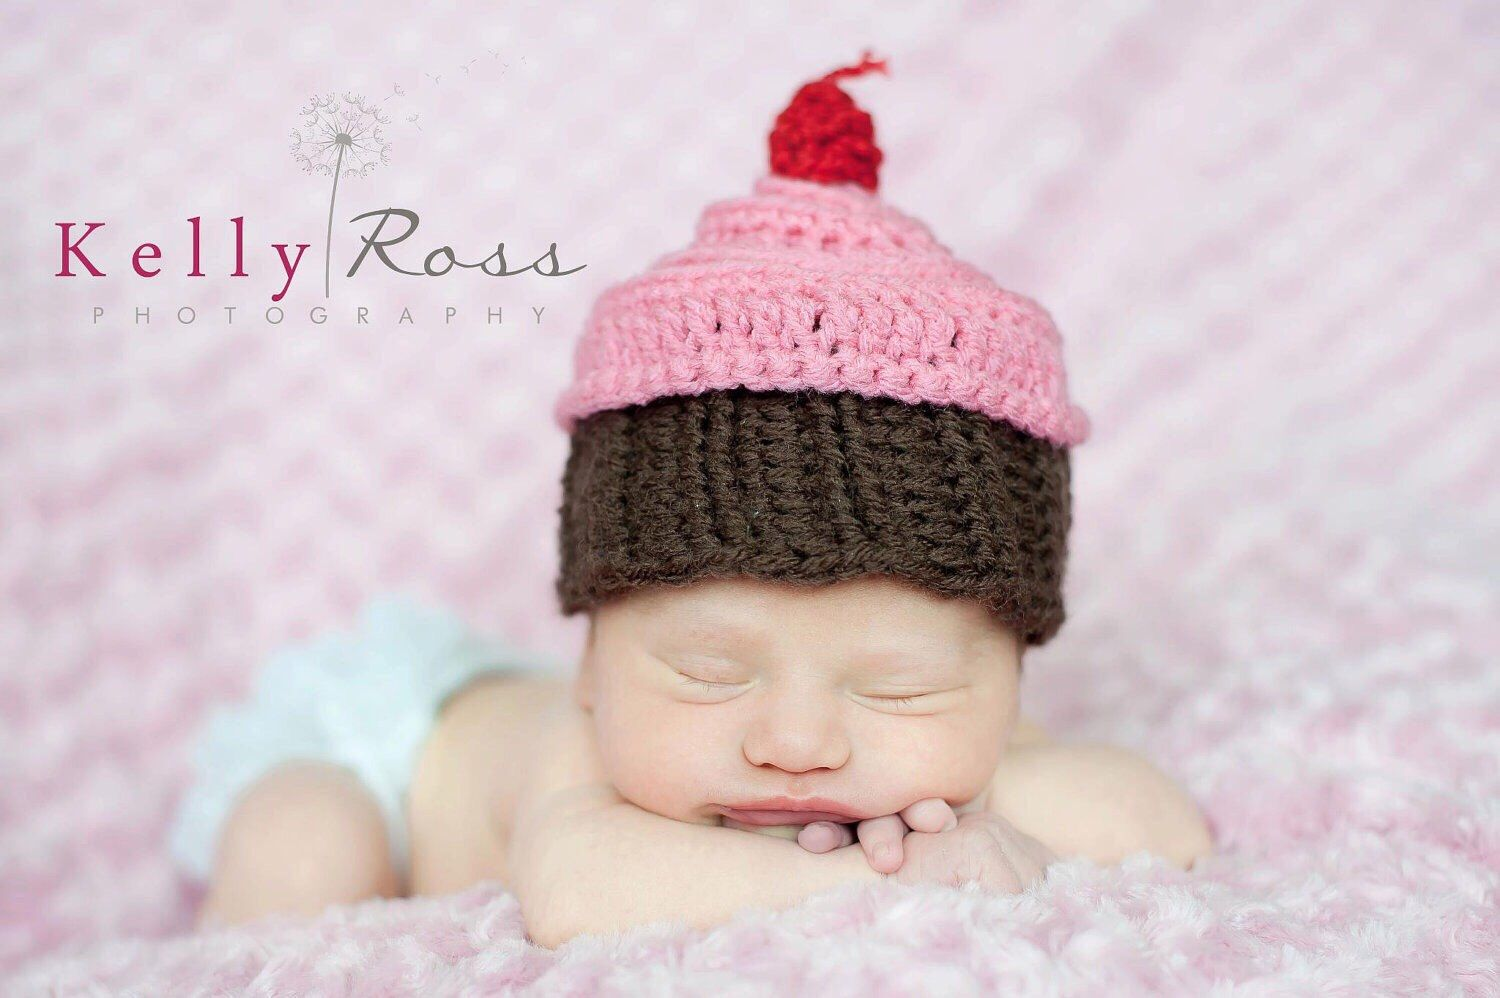 Crochet cupcake hat photography prop by AllysonGraceDesigns on Etsy https://www.etsy.com/listing/272204098/crochet-cupcake-hat-photography-prop